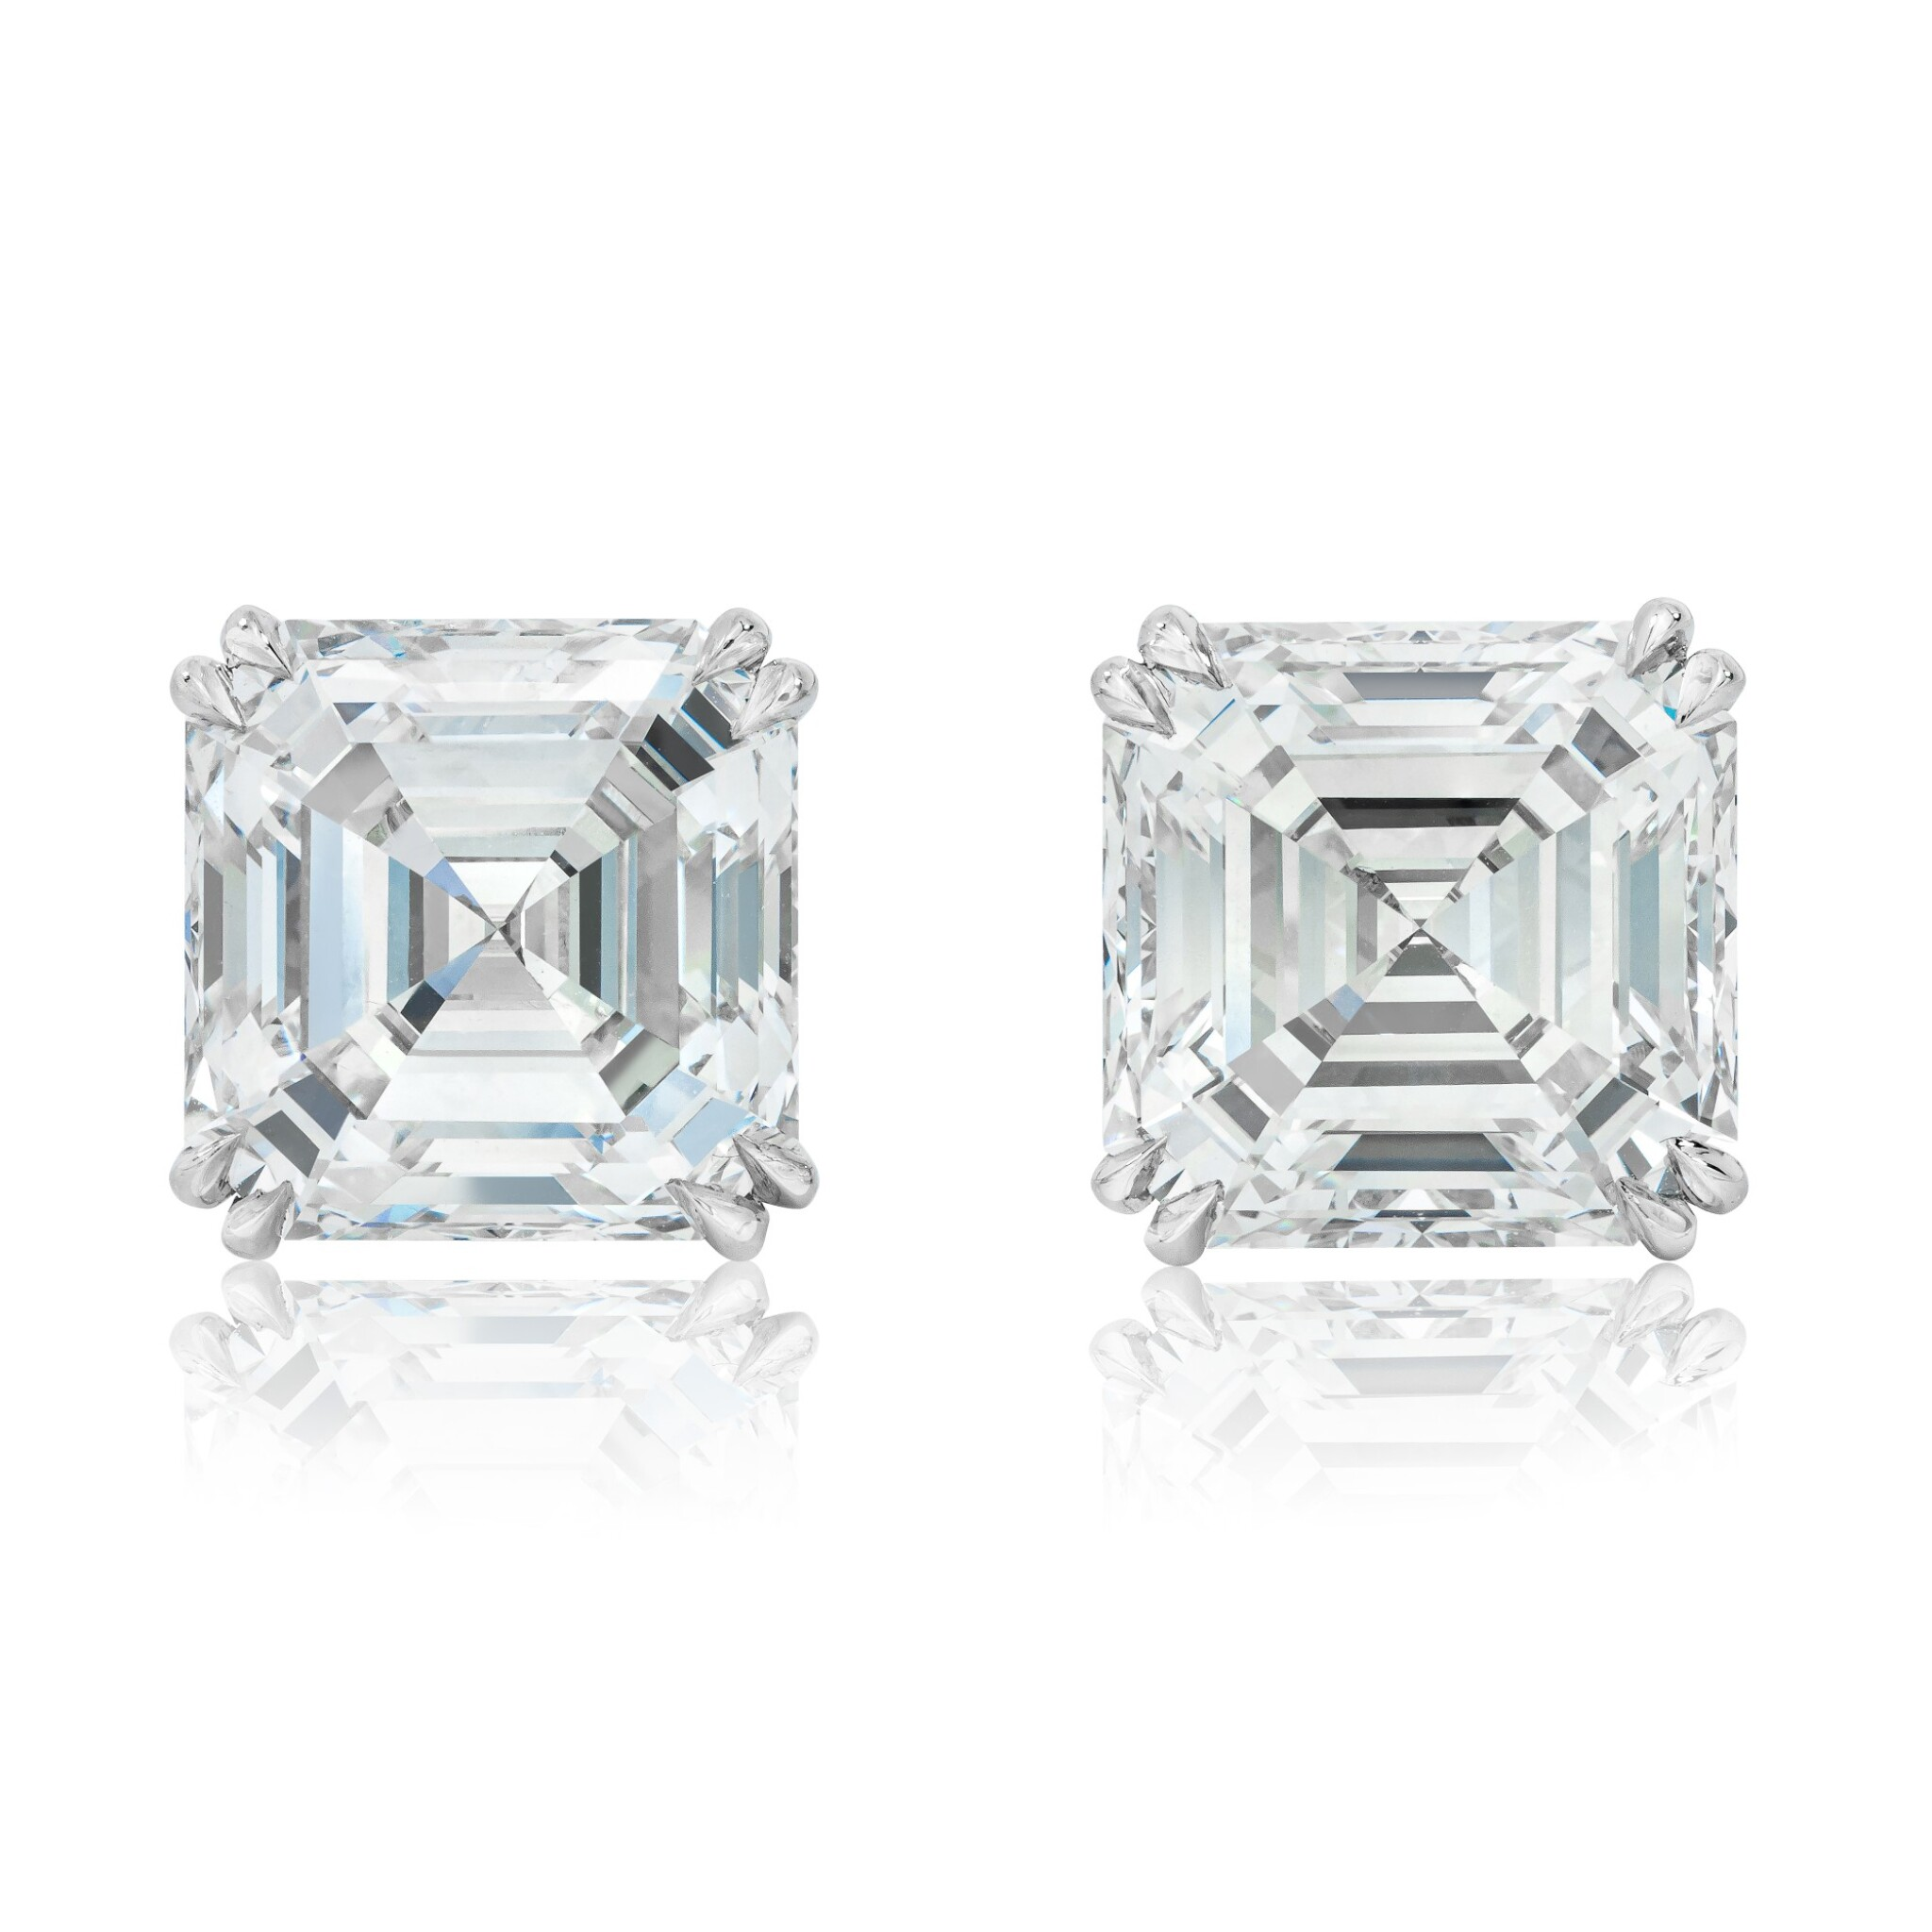 View full screen - View 1 of Lot 19. Pair of Diamond Earstuds.